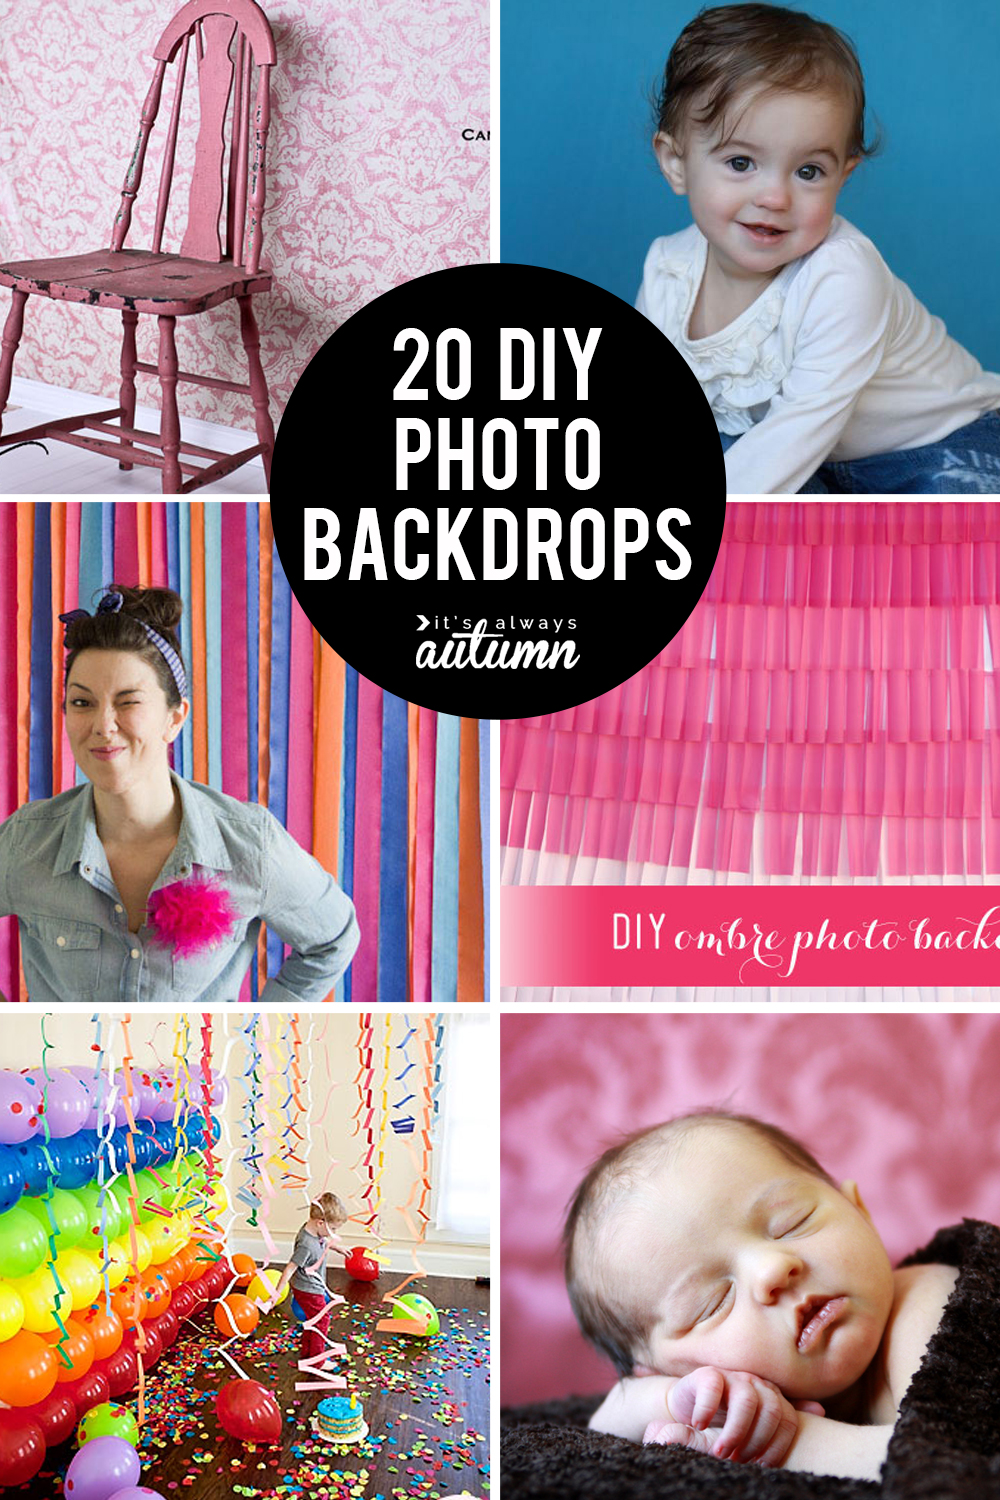 20 Genius Diy Backdrops You Can Make For Just A Few Dollars It S Always Autumn